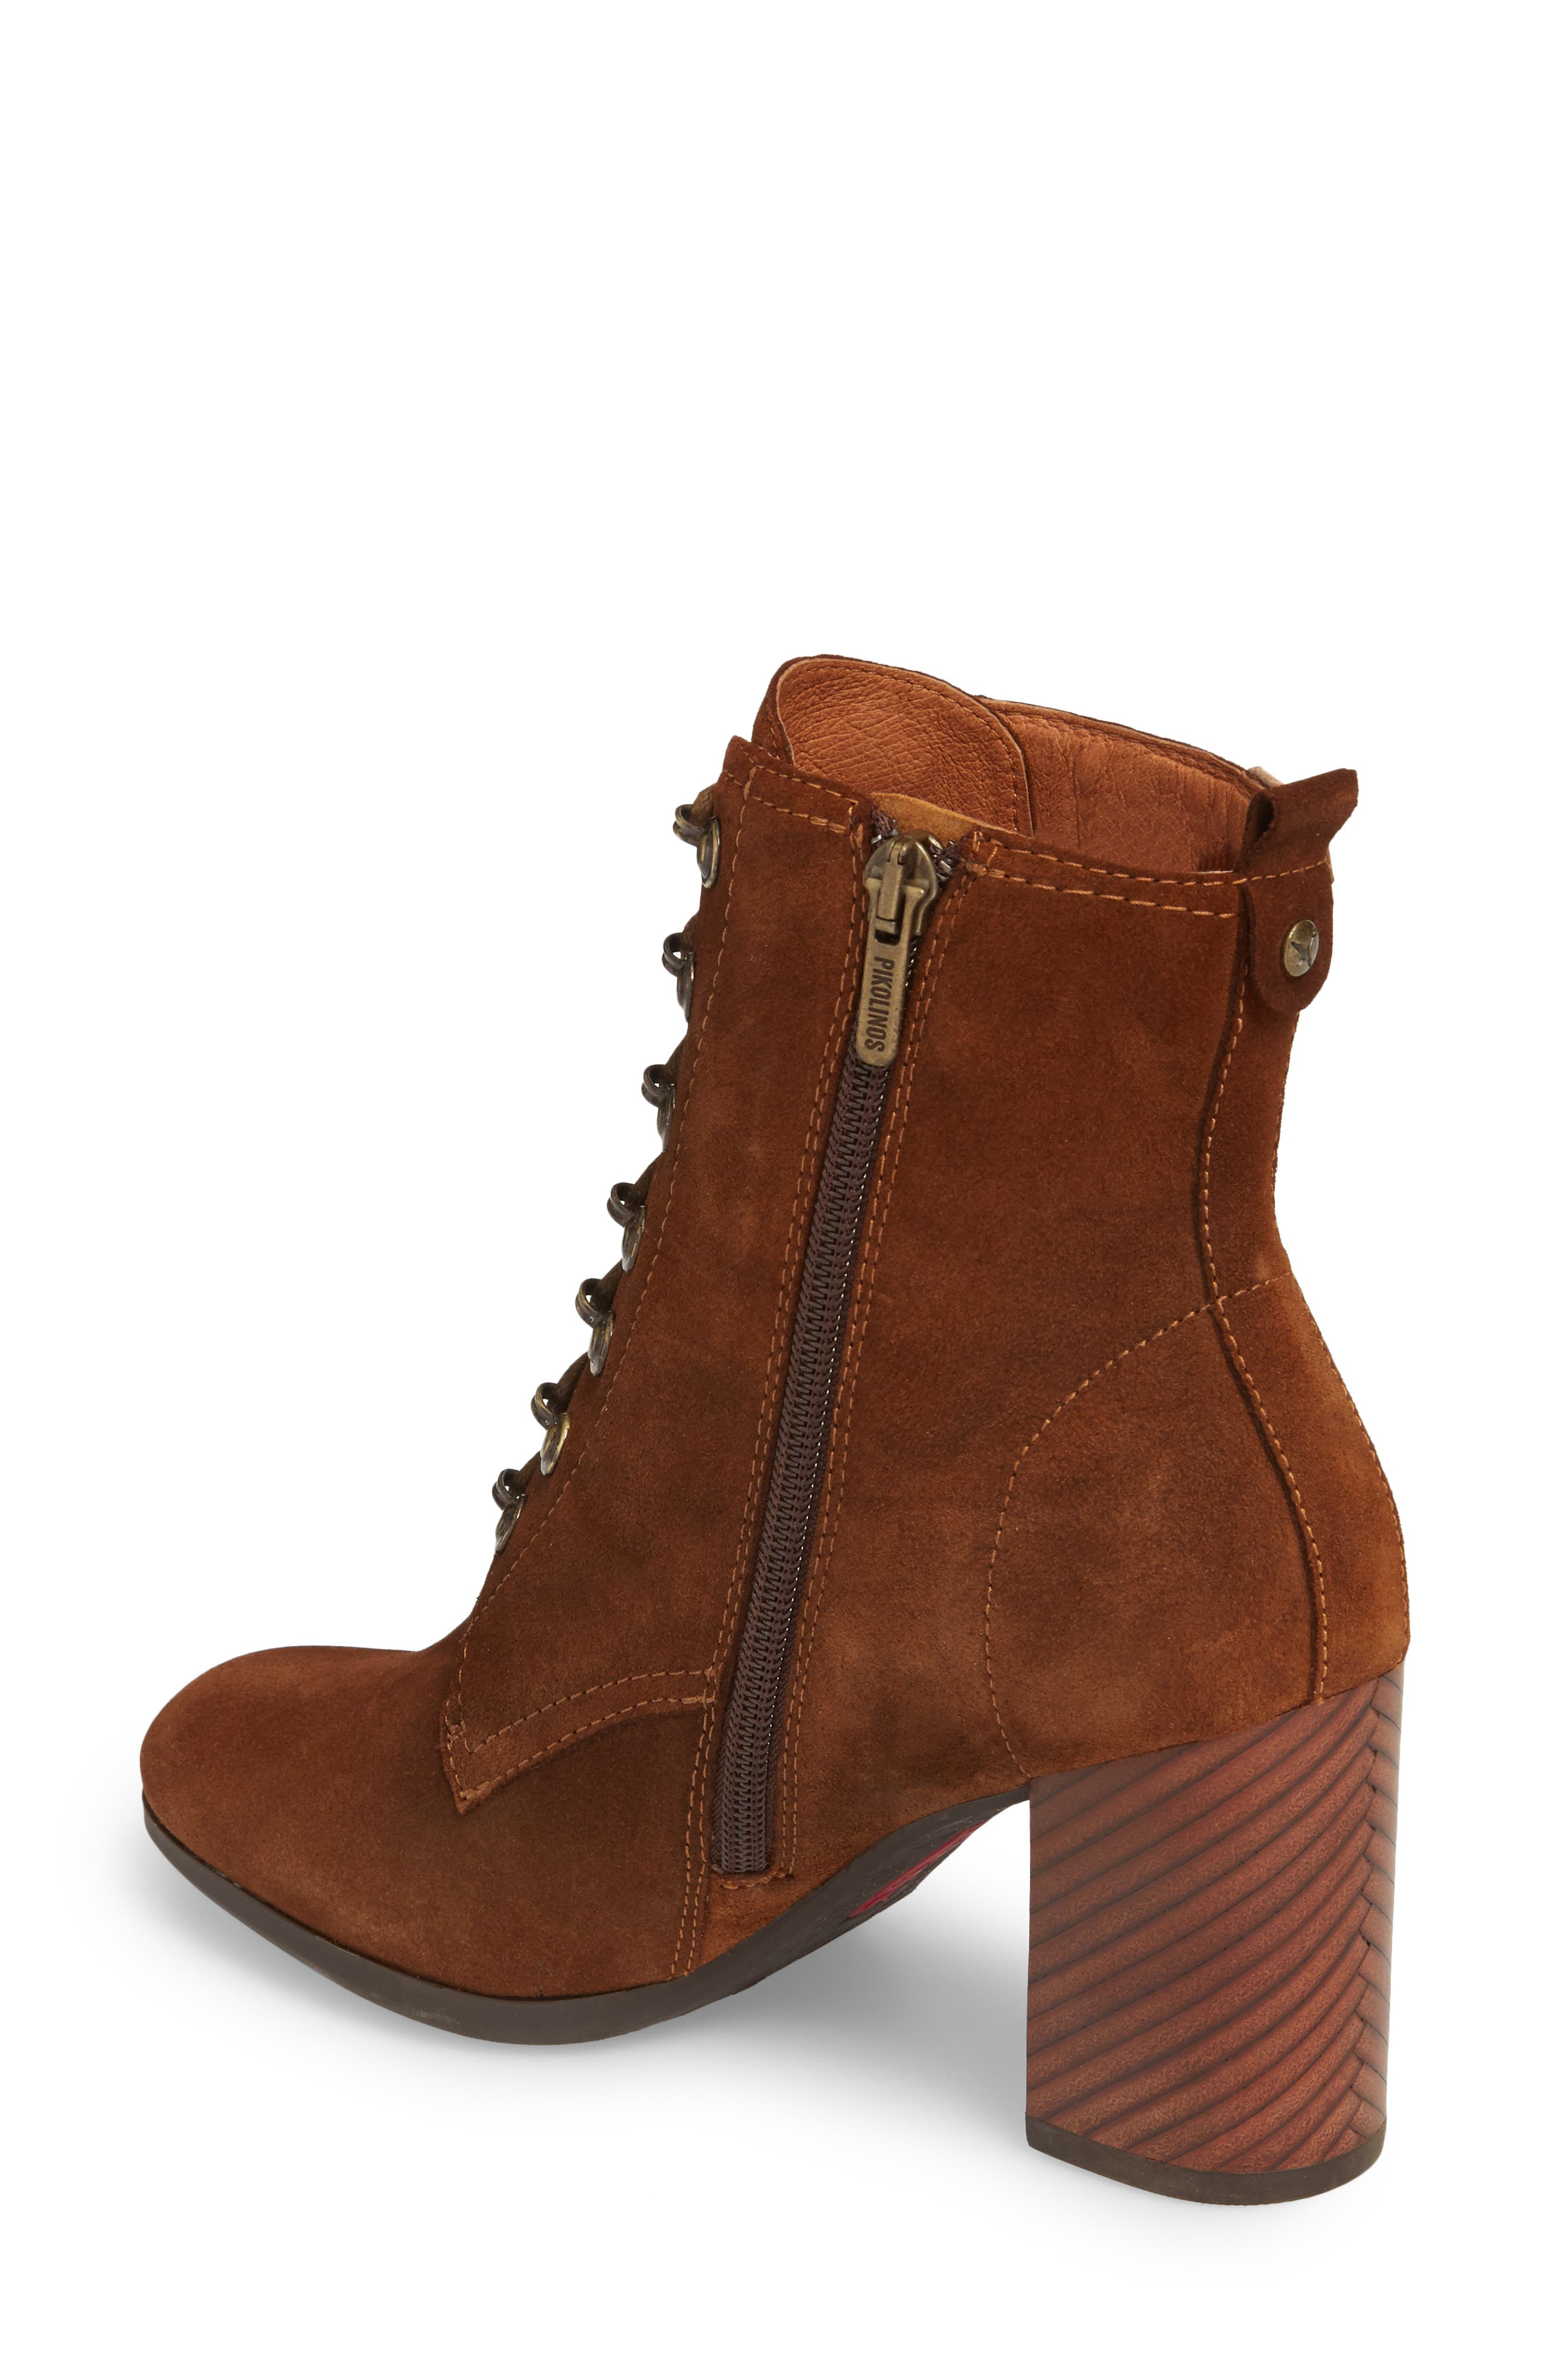 Aragon Lace-Up Boot,                             Alternate thumbnail 2, color,                             200